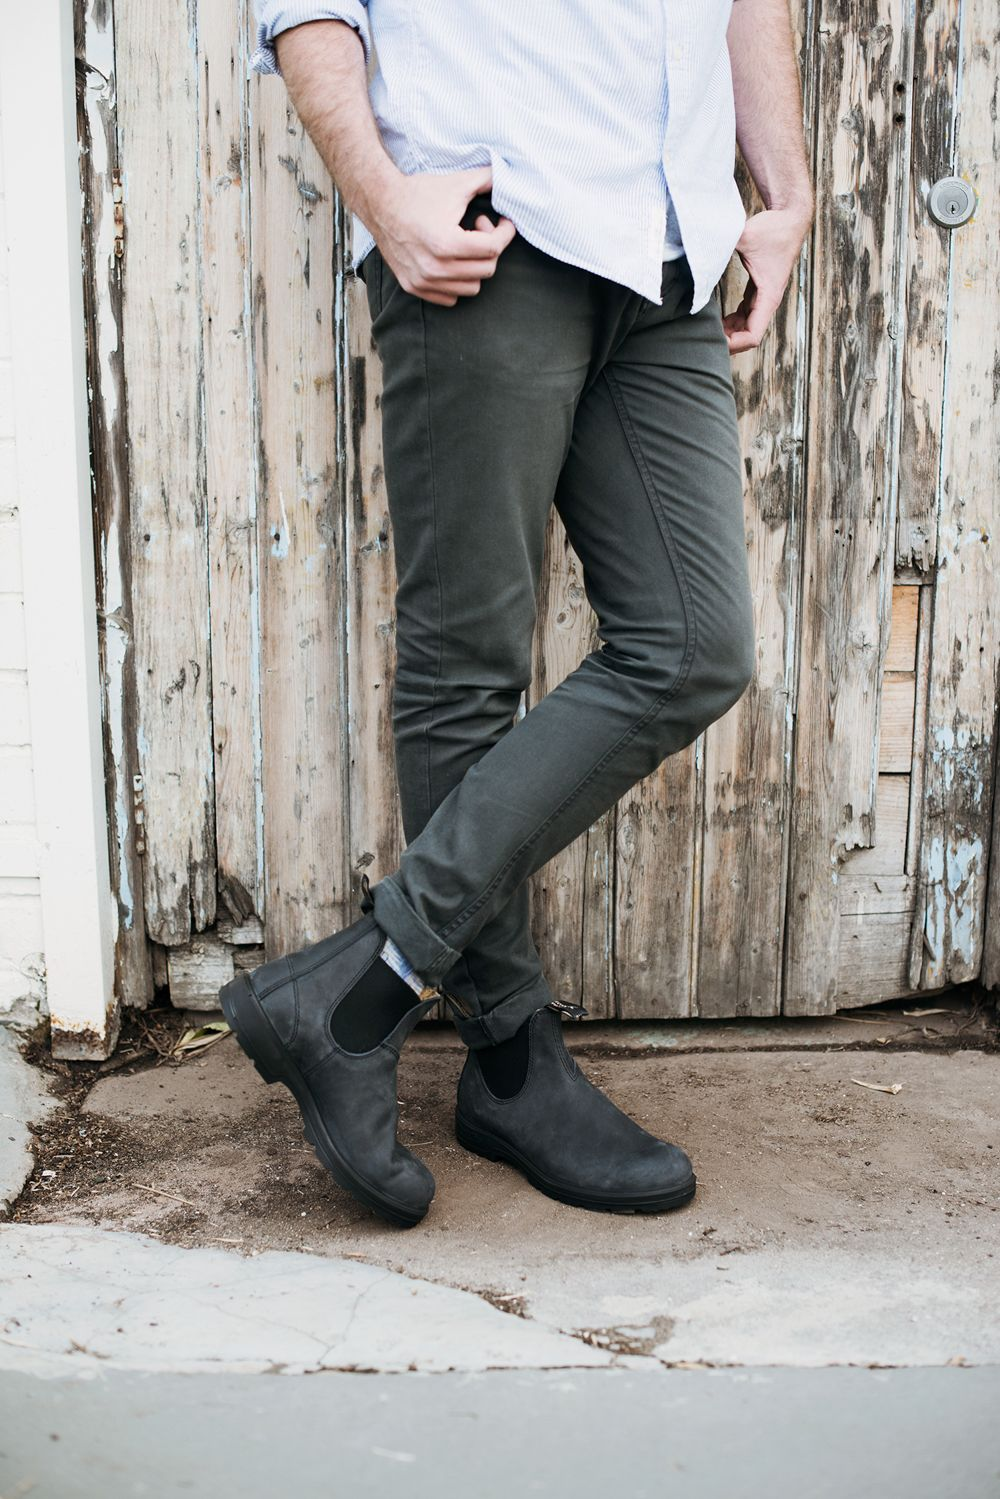 In A Cool Rustic Black Leather The 587 Brings An Edgy Style To Your Look The Weathered Appearance Gives A Bit Of Boots Outfit Men Blundstone Boots Blundstone